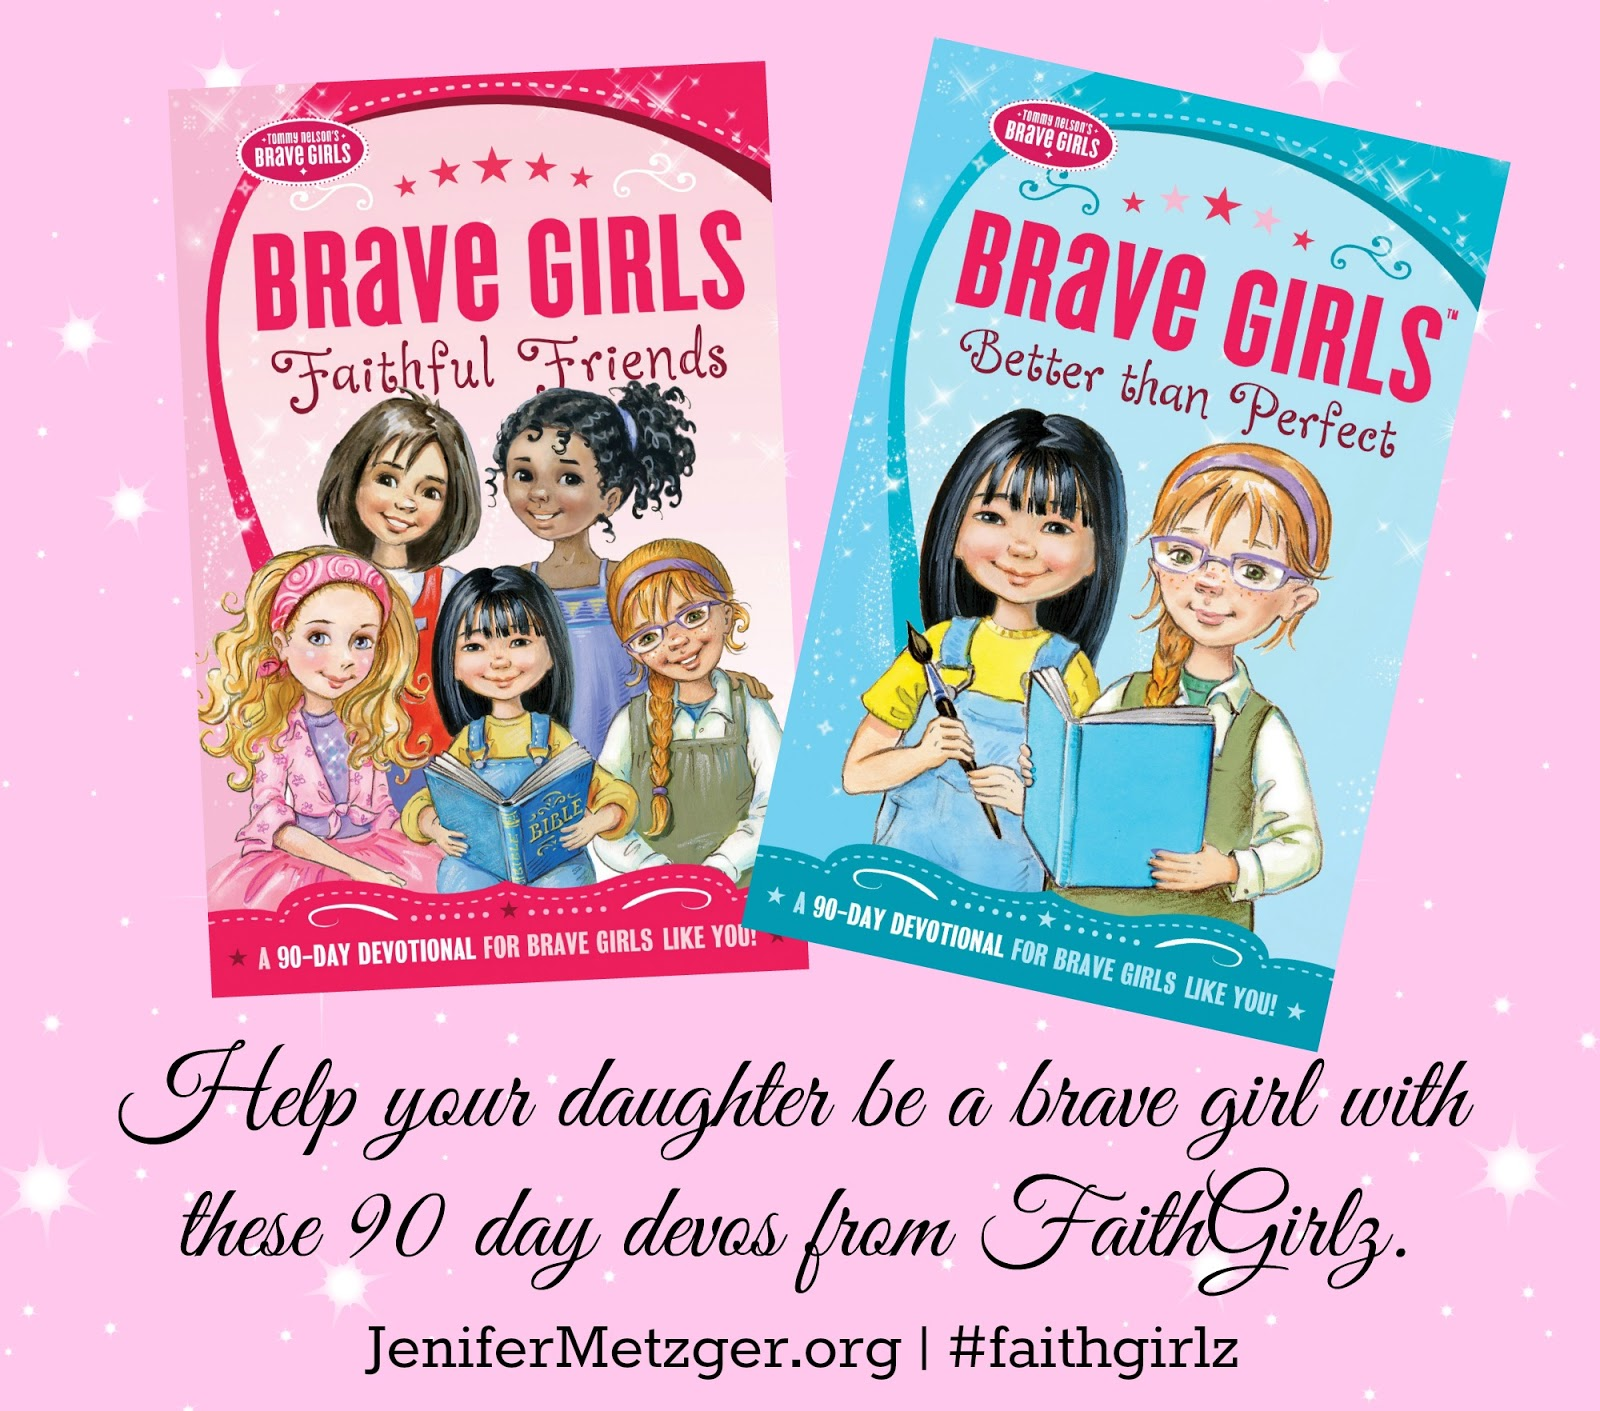 Help your daughter be a #brave #girl with these 90 day devos from #FaithGirlz.